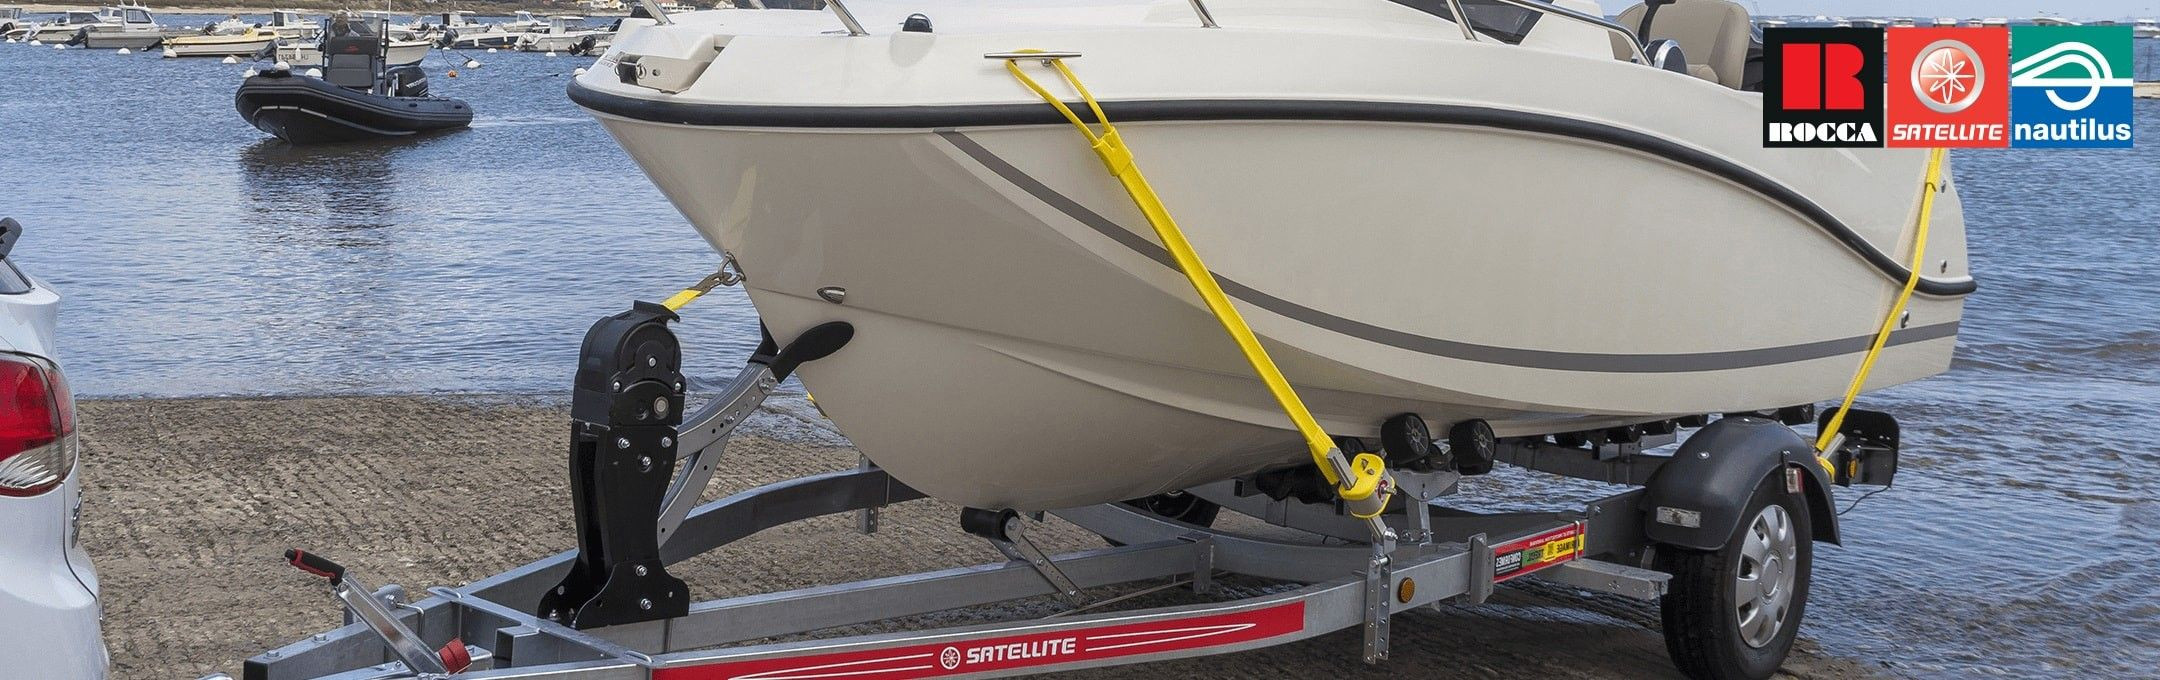 Fastening system designed for your boat and your safety.